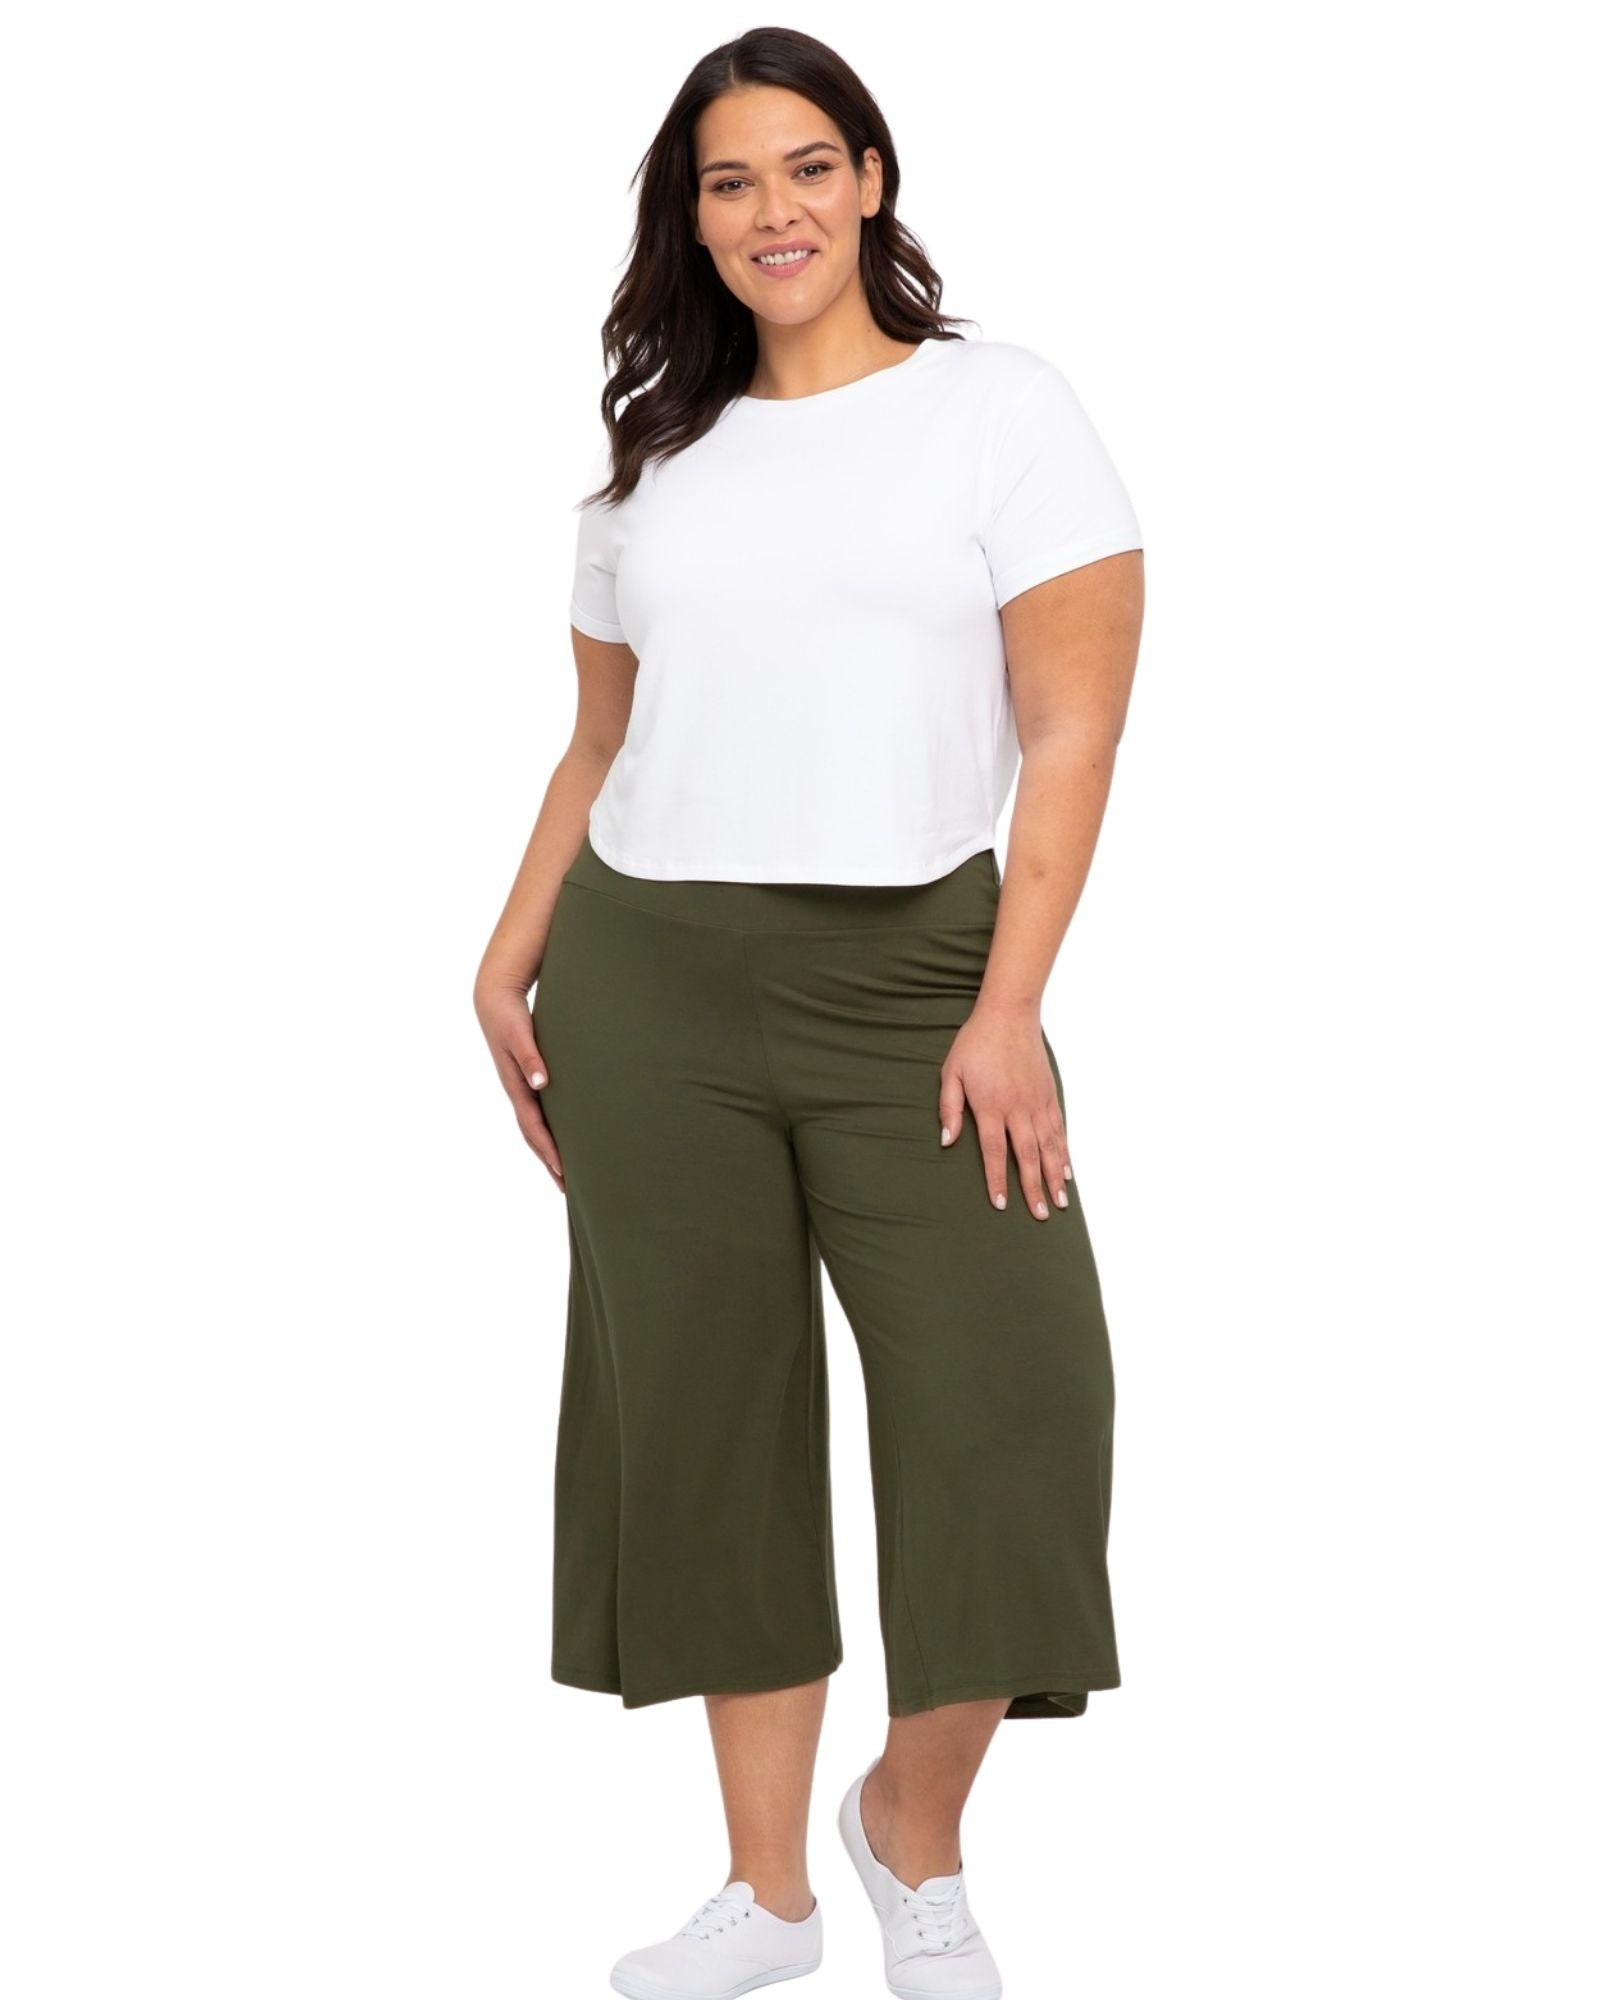 Bamboo Culottes- Olive Size 8-22